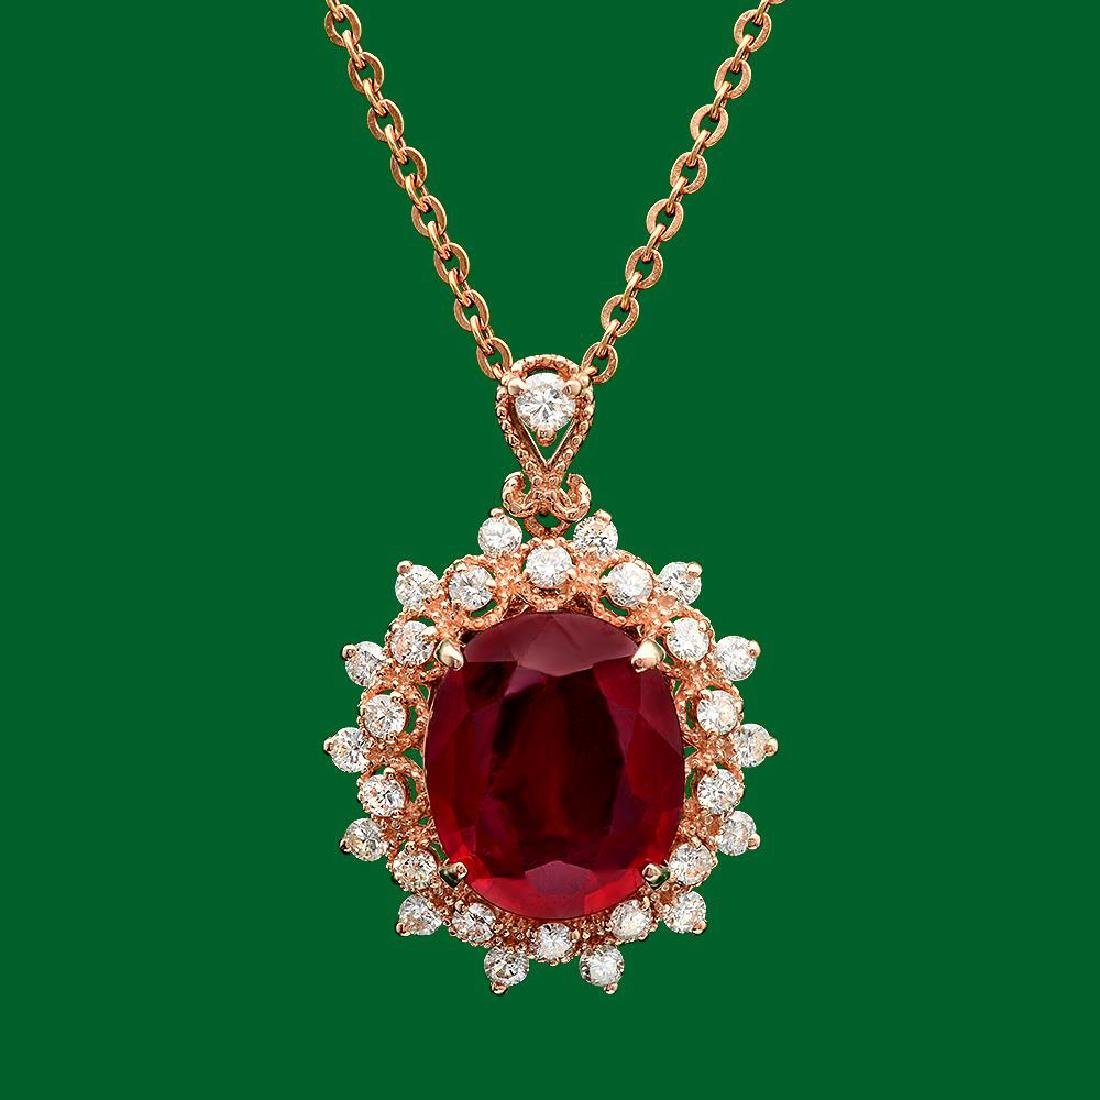 14k Gold 6.48ct Ruby 0.87ct Diamond Pendant